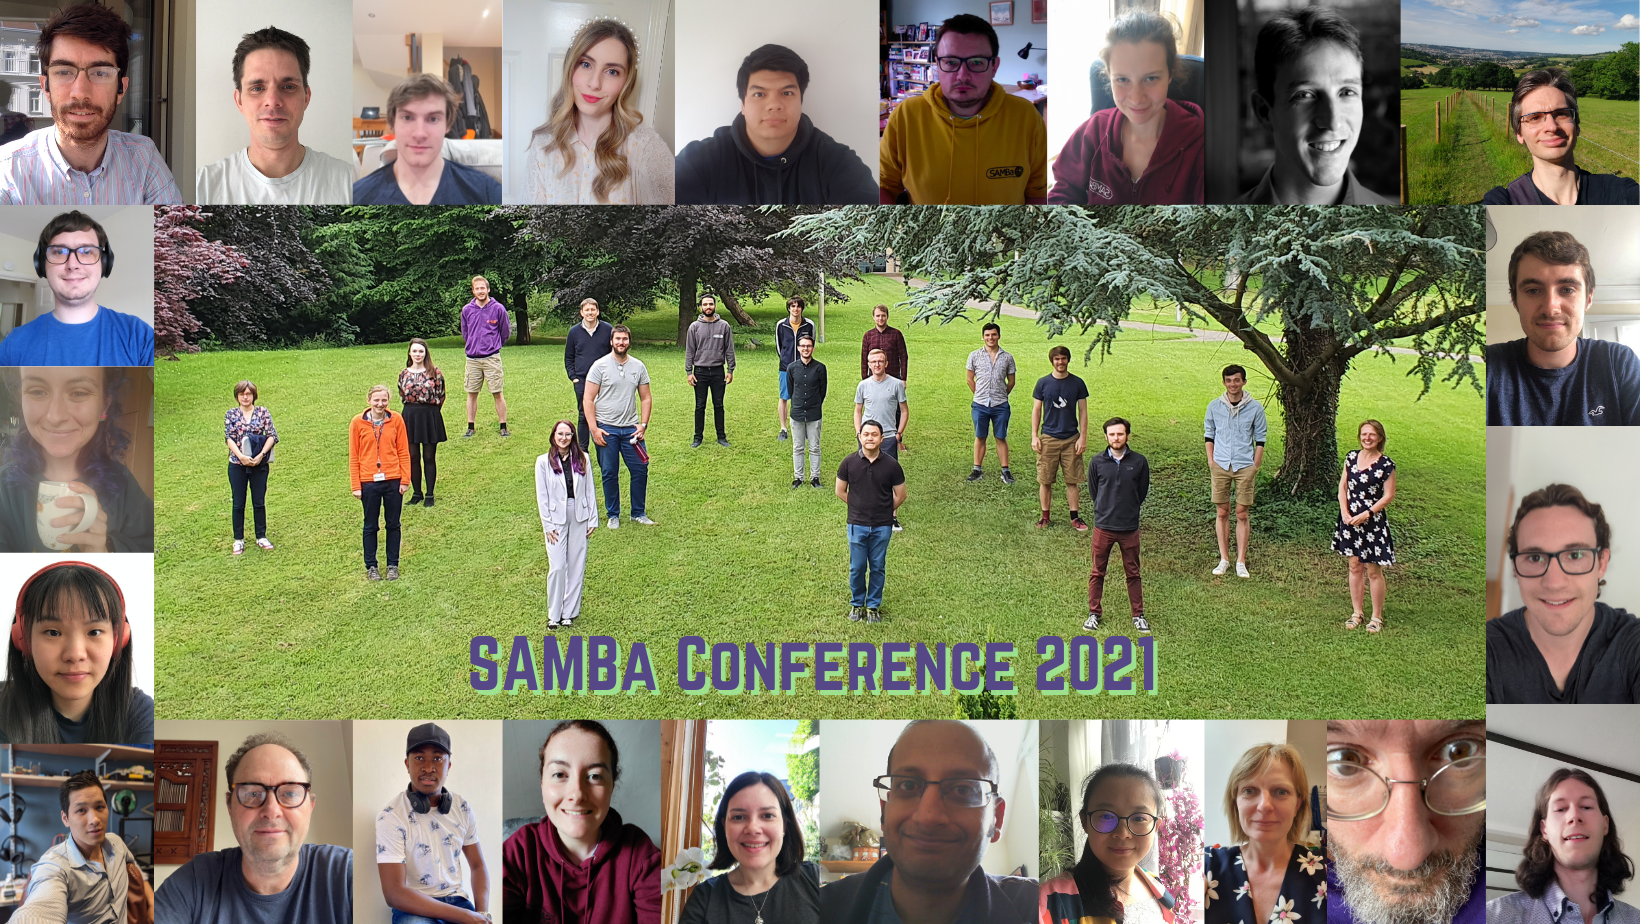 '21 Conference Attendees